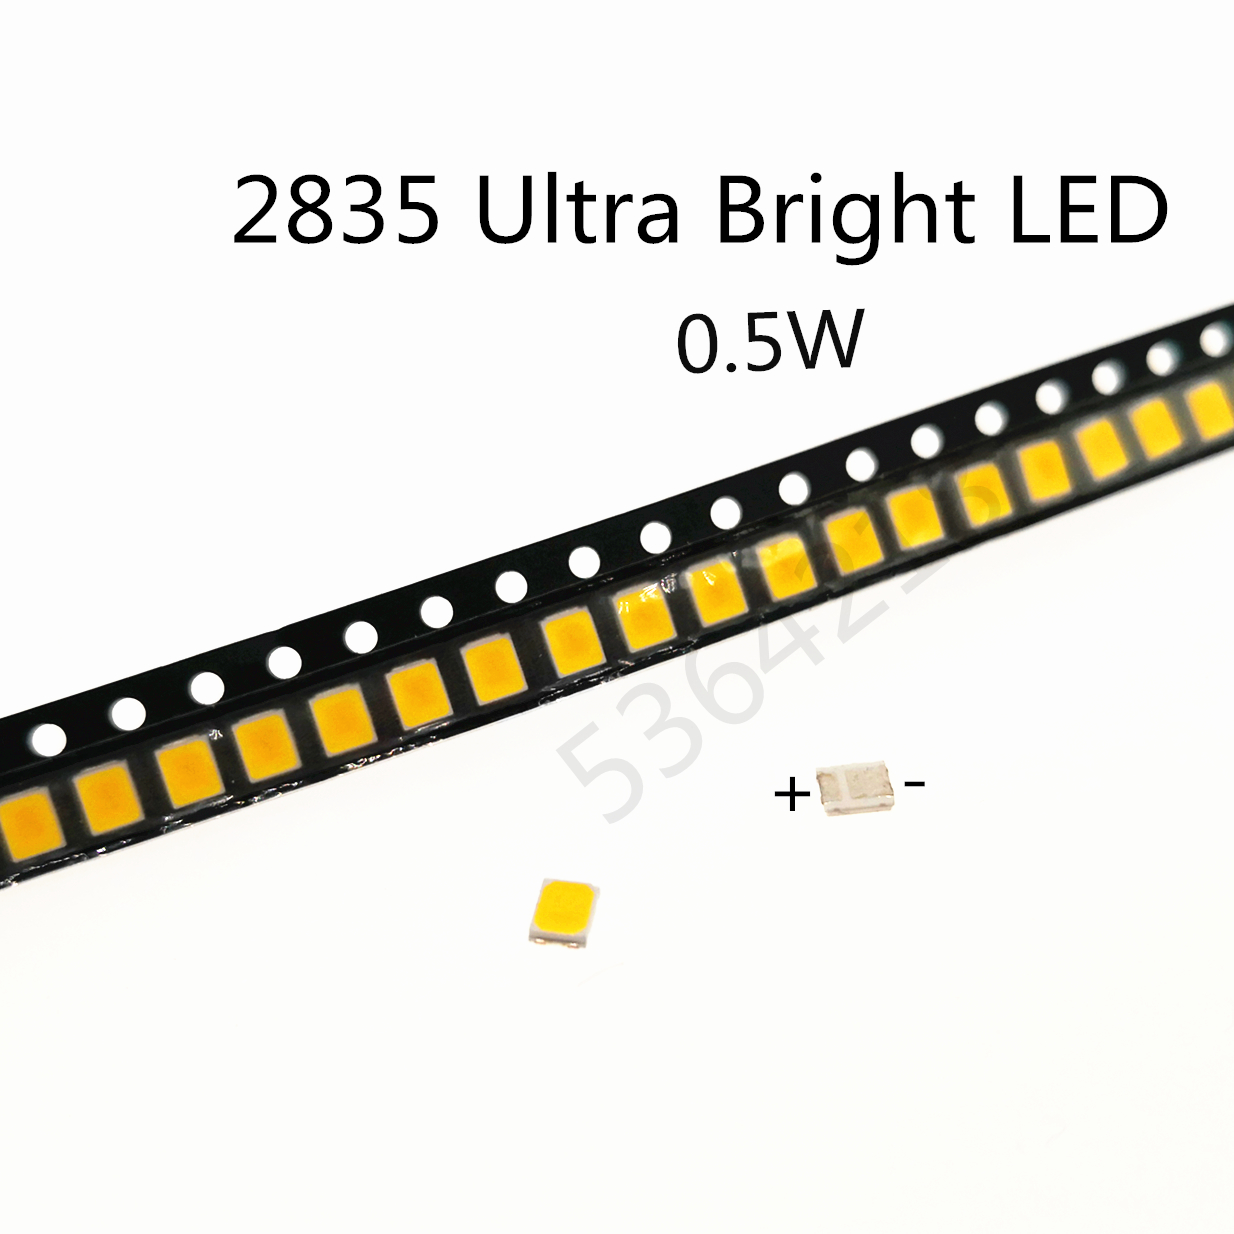 50pcs SMD LED 2835 1W 0.5W 3V 6V 9V 18V 36V 50-135LM Warm Cold White Ultra Bright Surface Mount PCB LED Light Emitting Diode